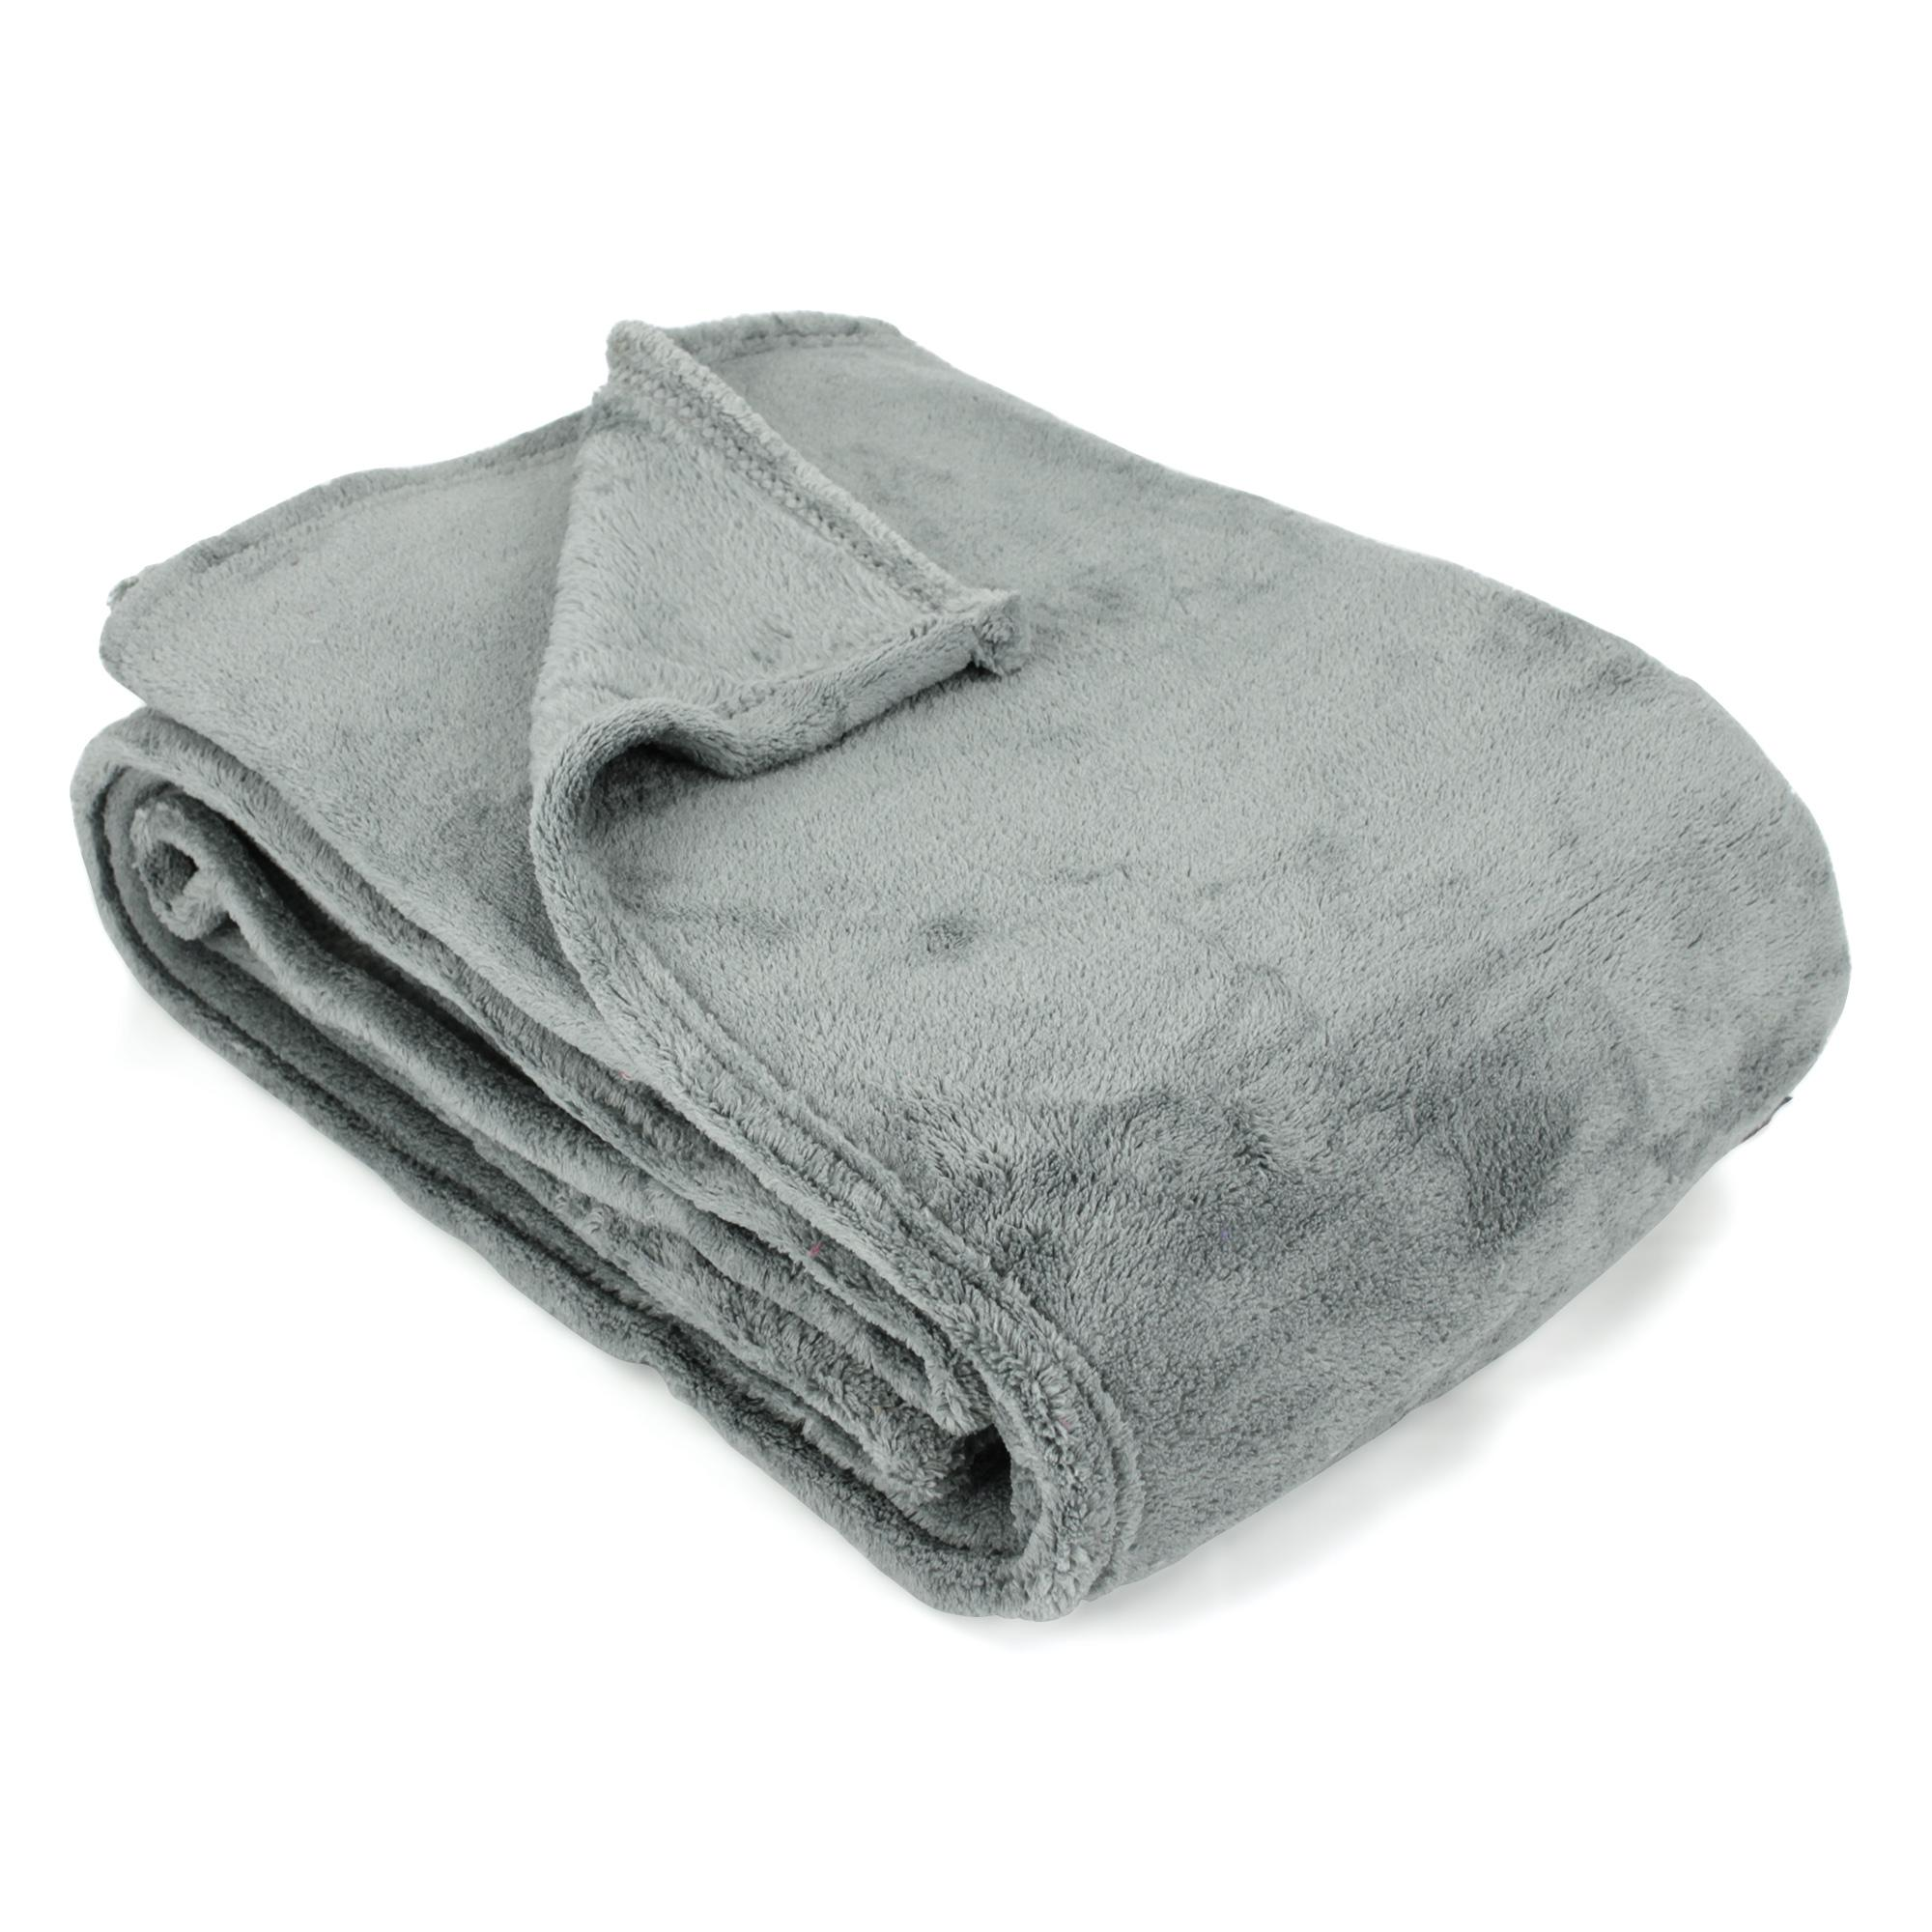 couverture polaire 220x240 microfibre 280g m2 apollo gris argent ebay. Black Bedroom Furniture Sets. Home Design Ideas